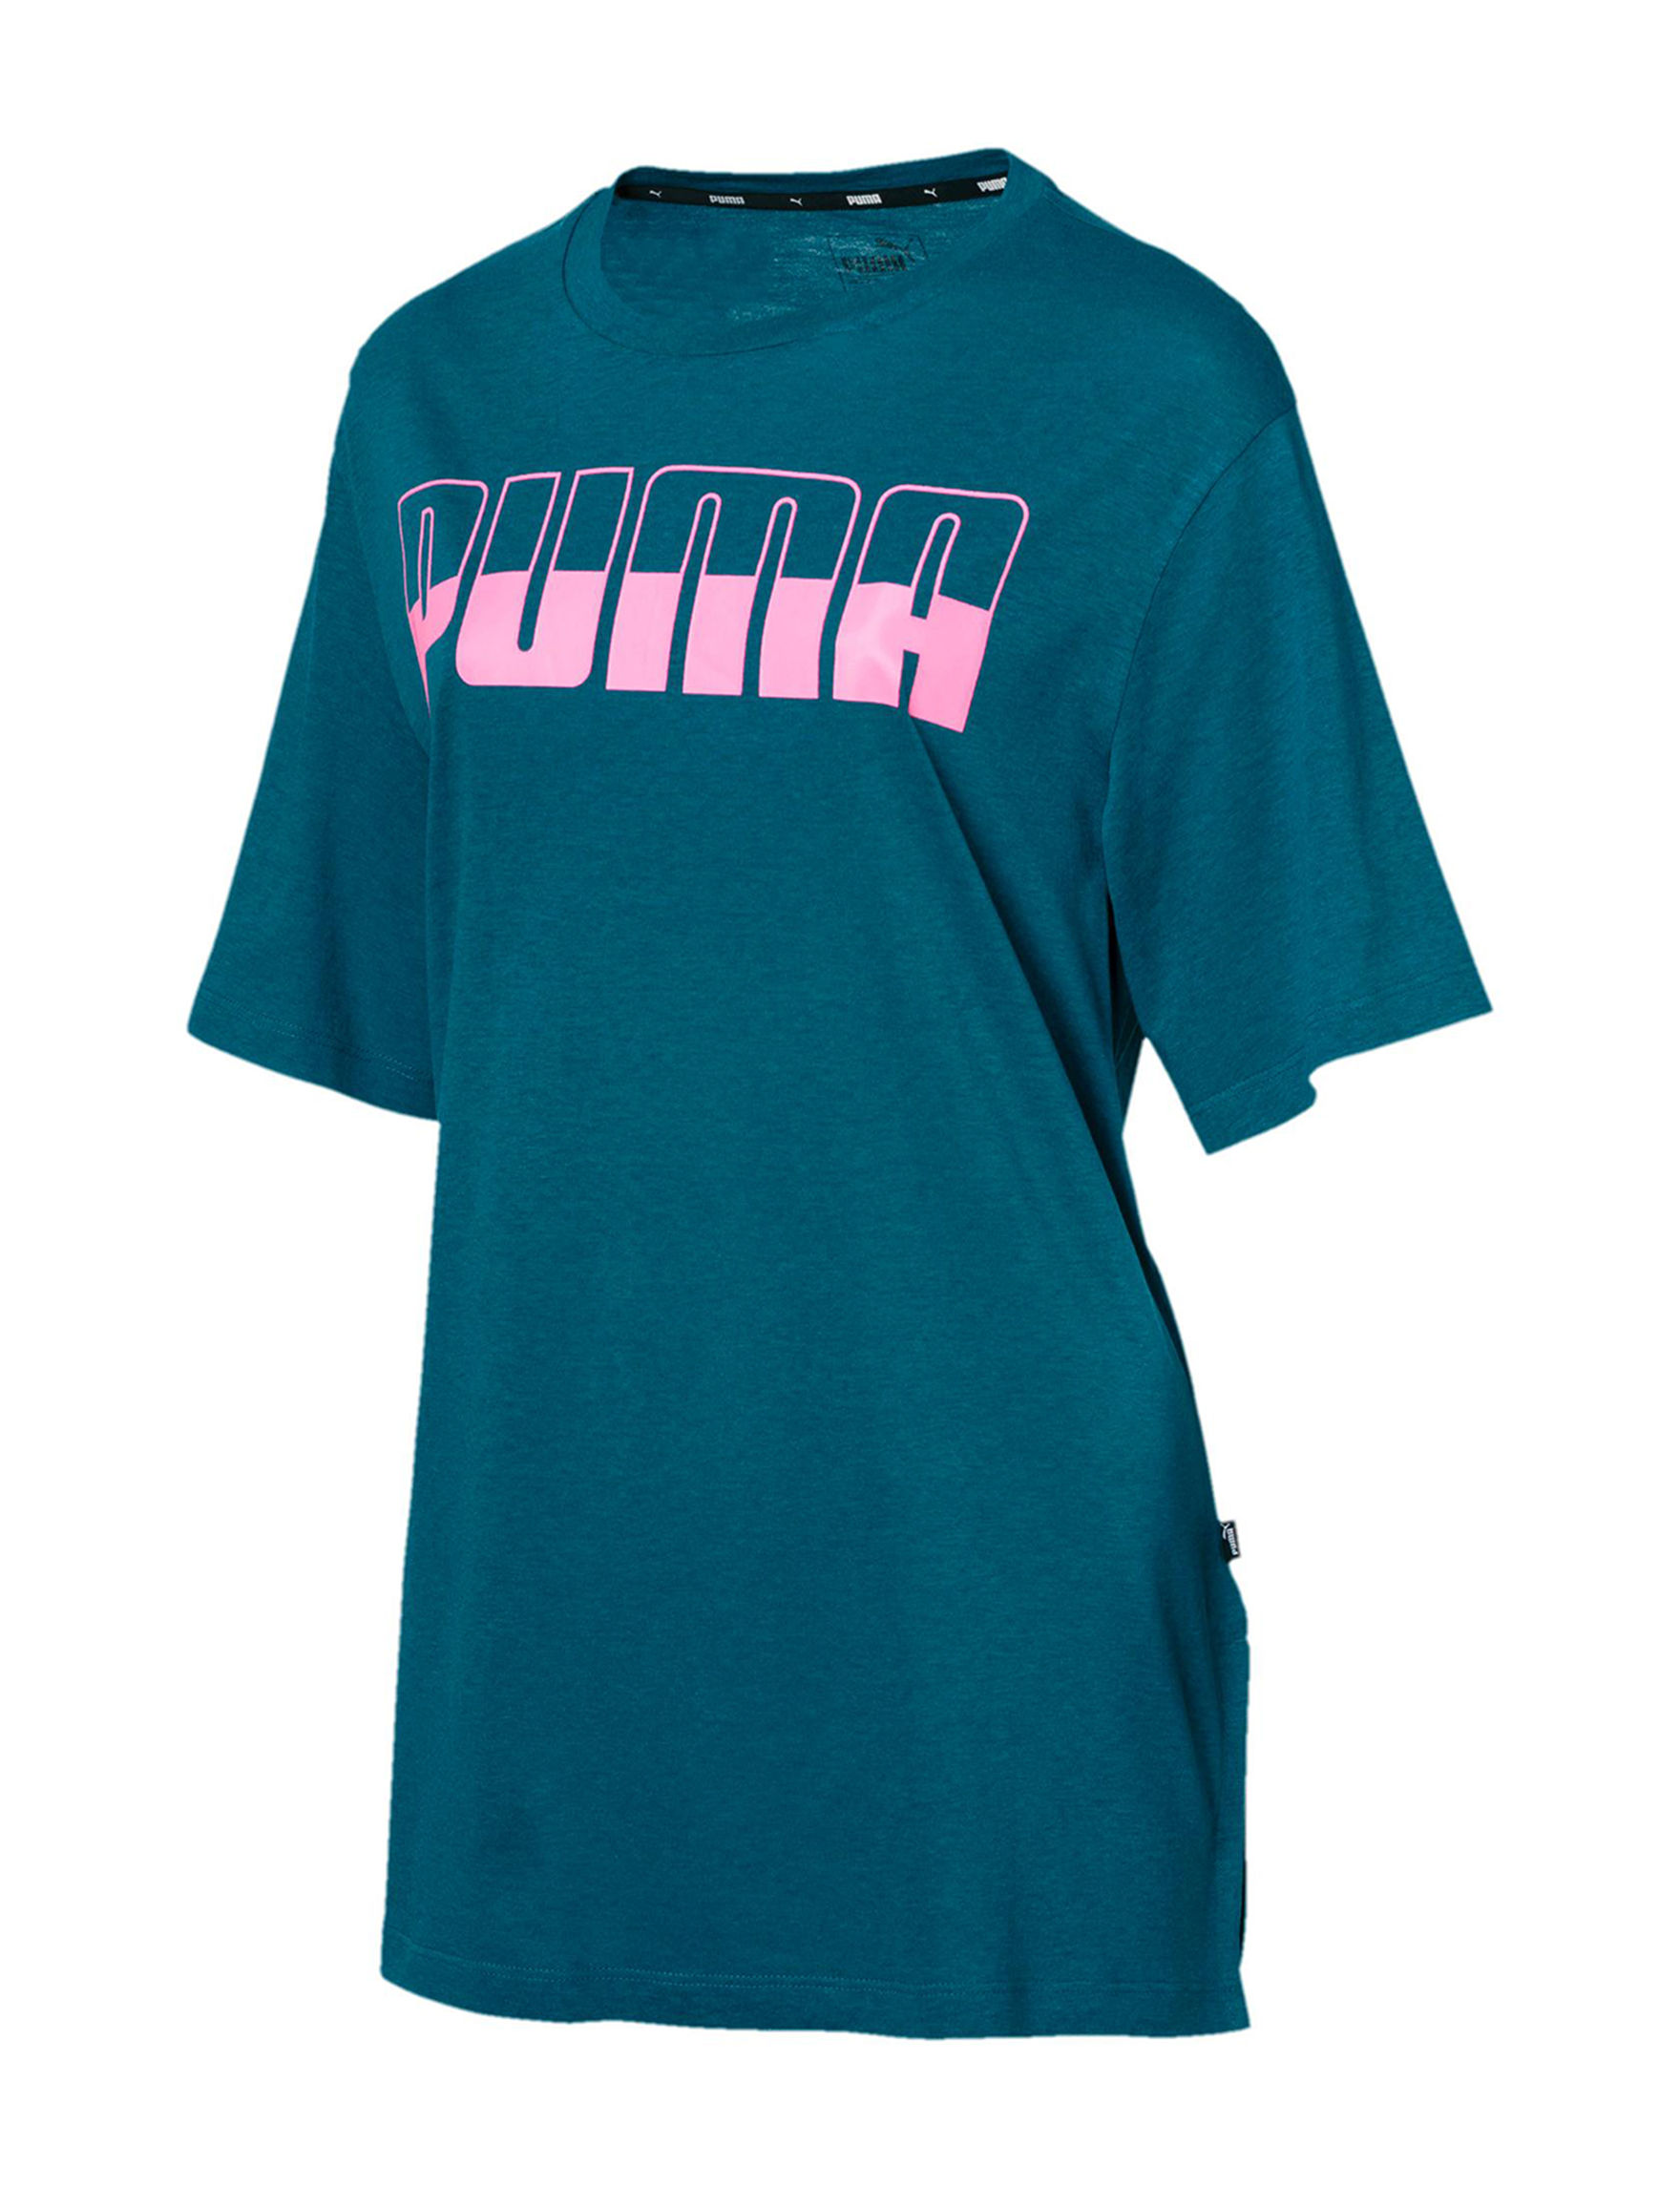 Puma Teal Tees & Tanks